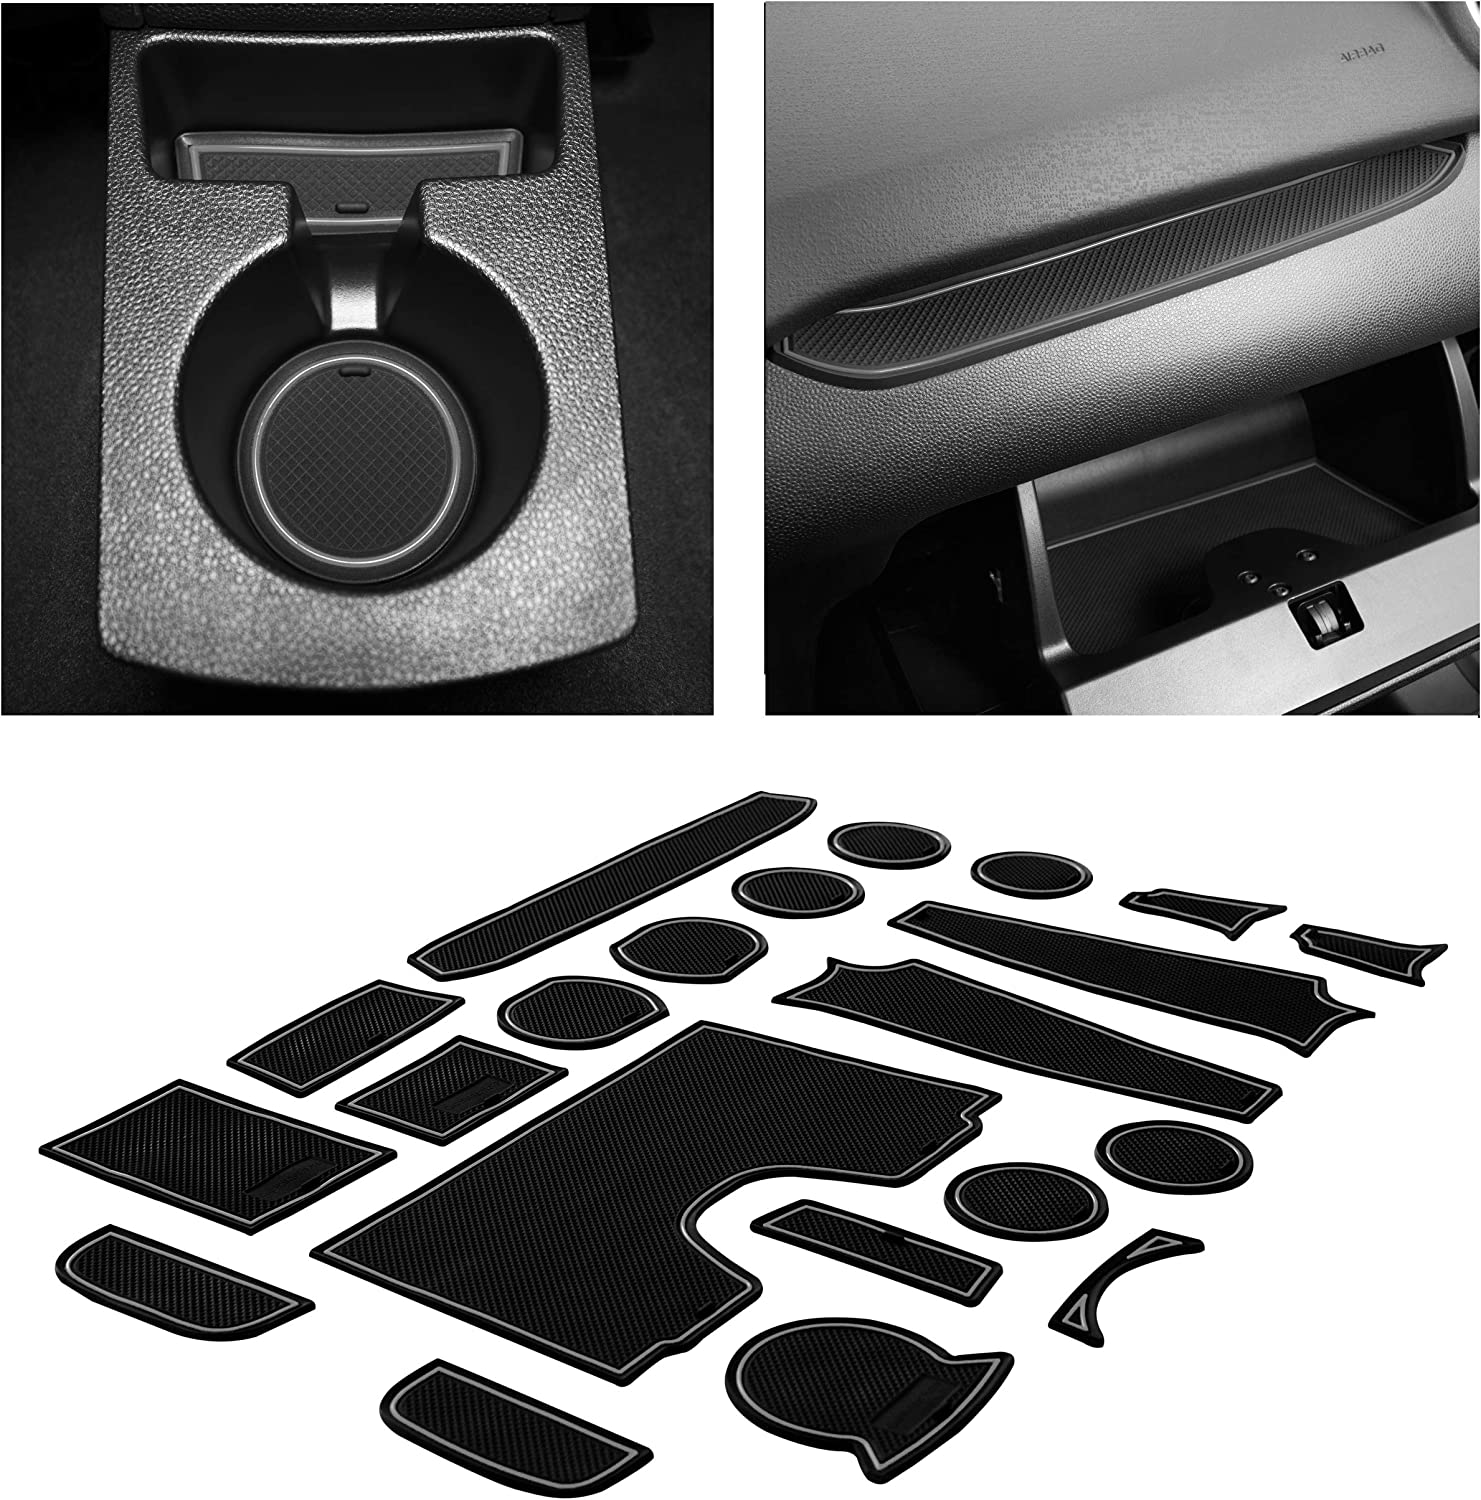 CupHolderHero fits Ford Fusion Accessories 2013-2016 Premium Custom Interior Non-Slip Anti Dust Cup Holder Inserts Door Pocket Liners 23-pc Set Center Console Liner Mats Gray Trim